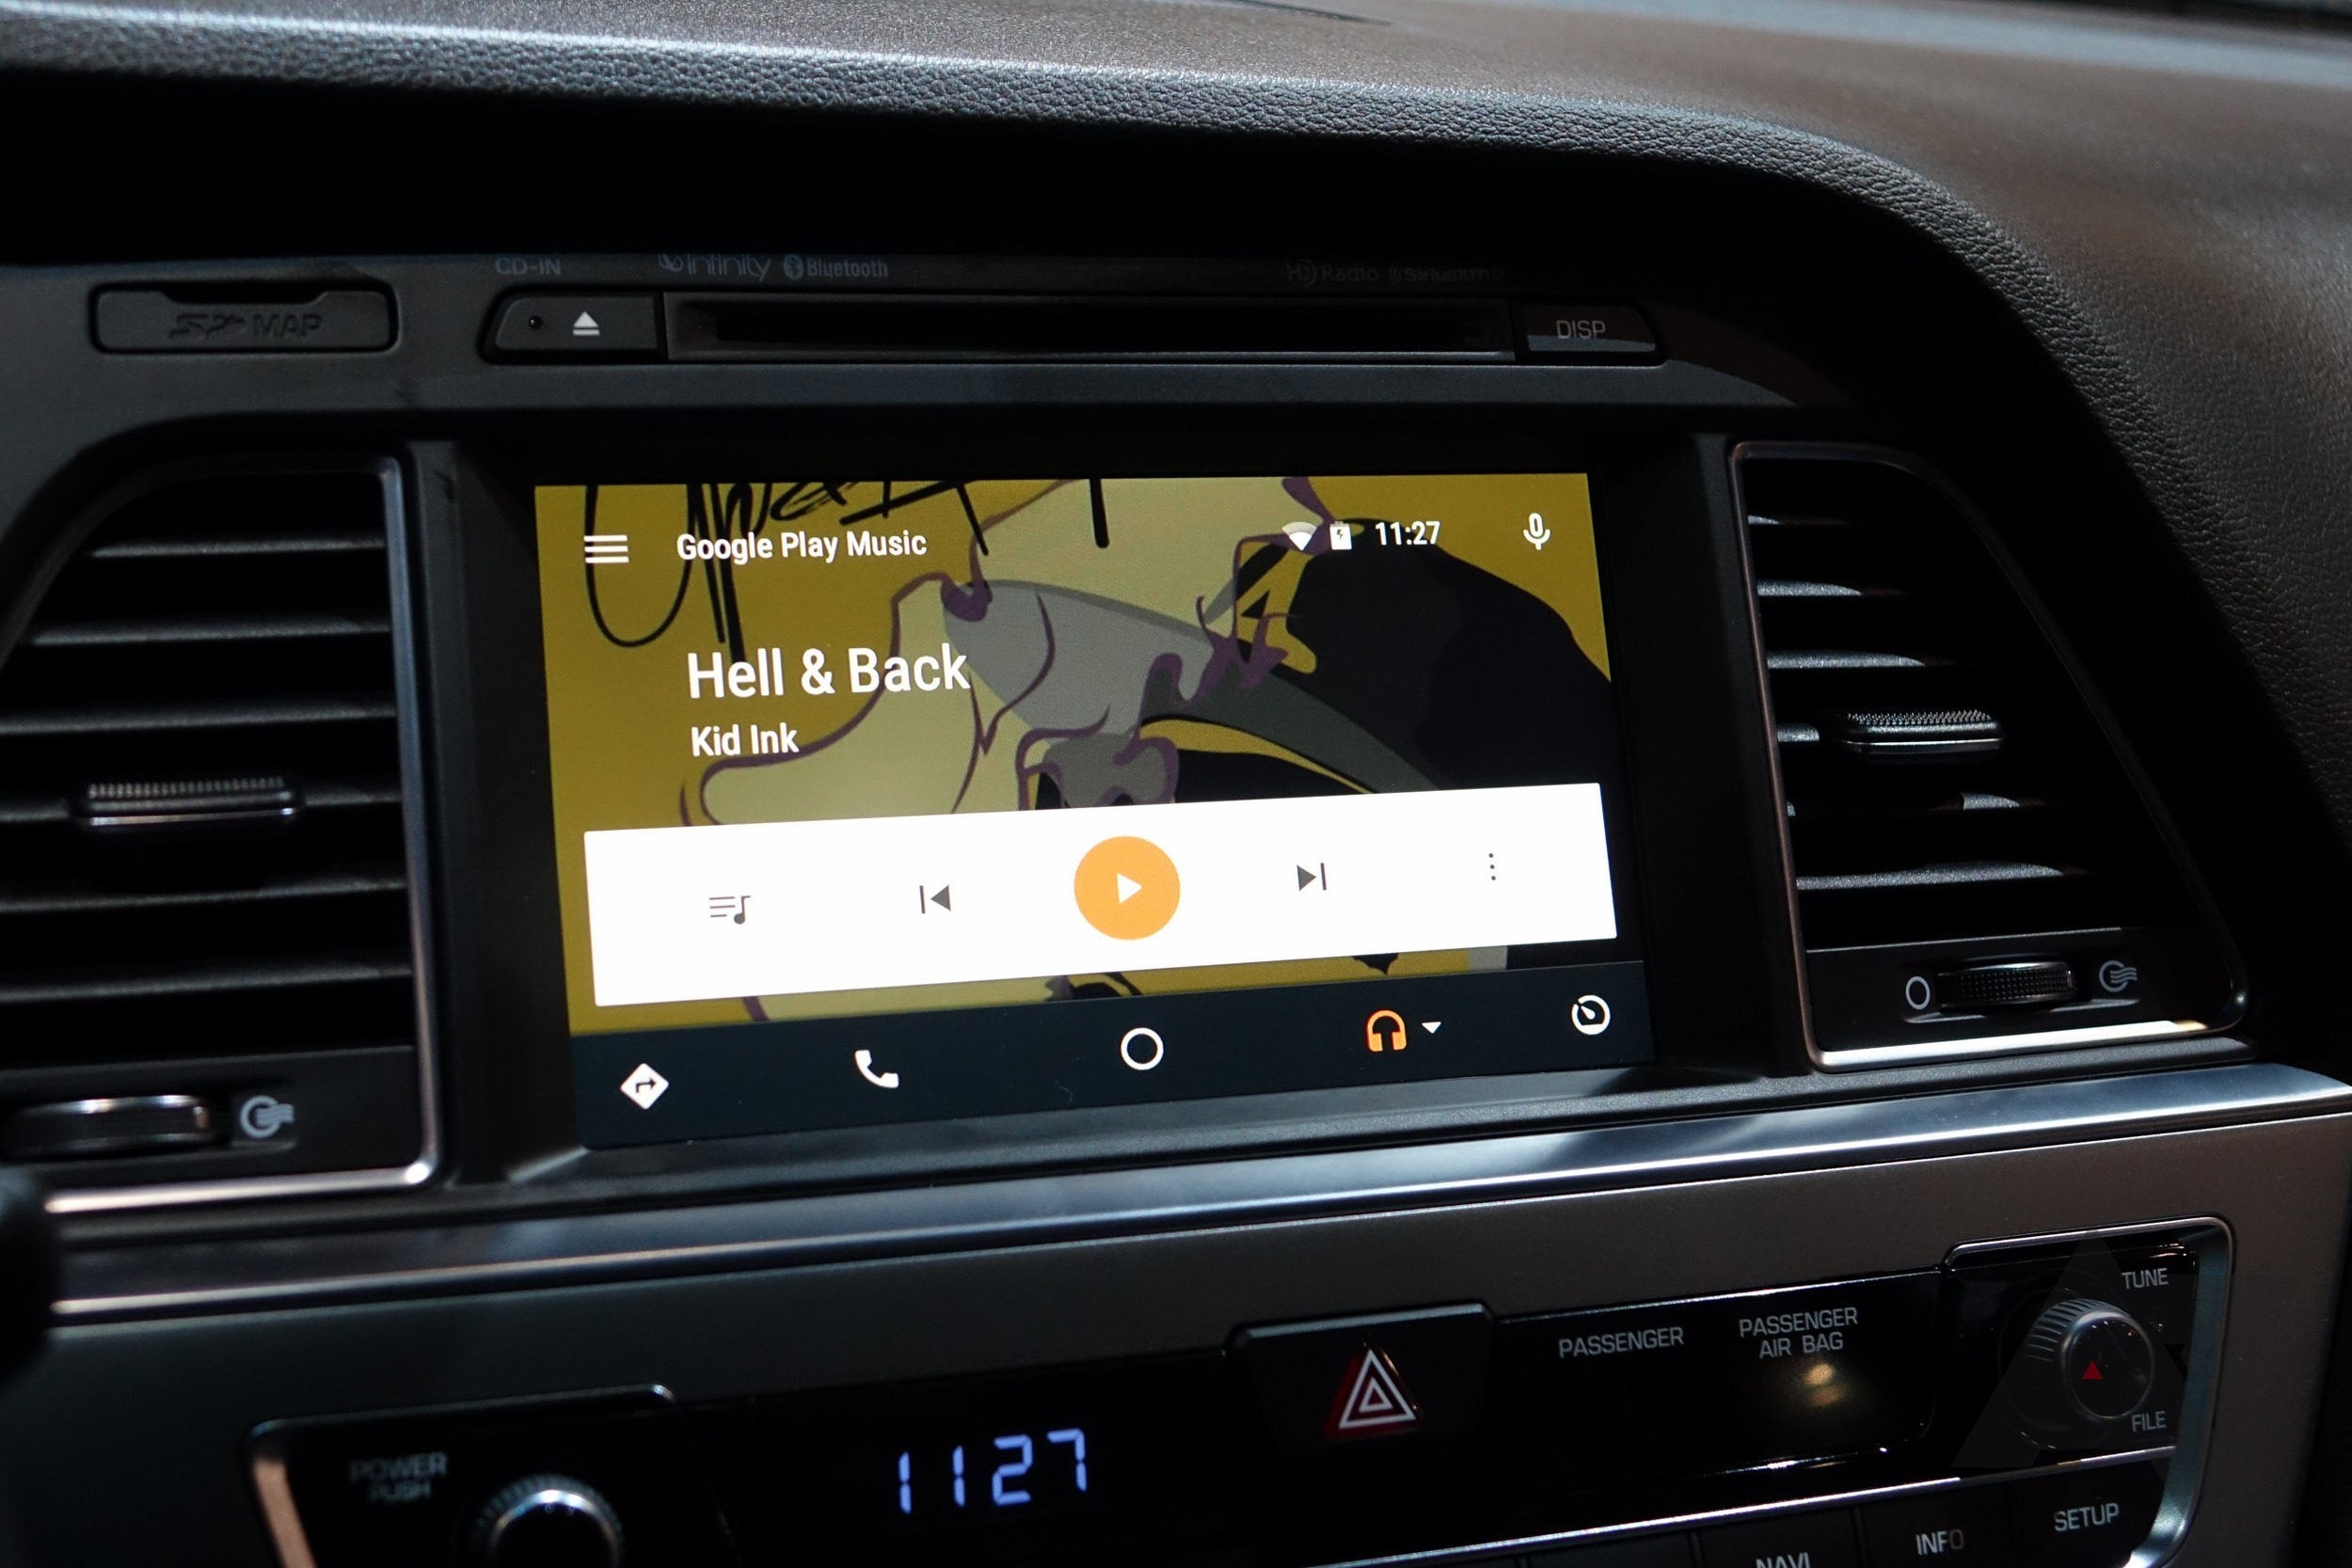 Update It S Official 2017 Hyundai Sonata Android Auto Upgrade Now Available At Some Dealers Others Soon